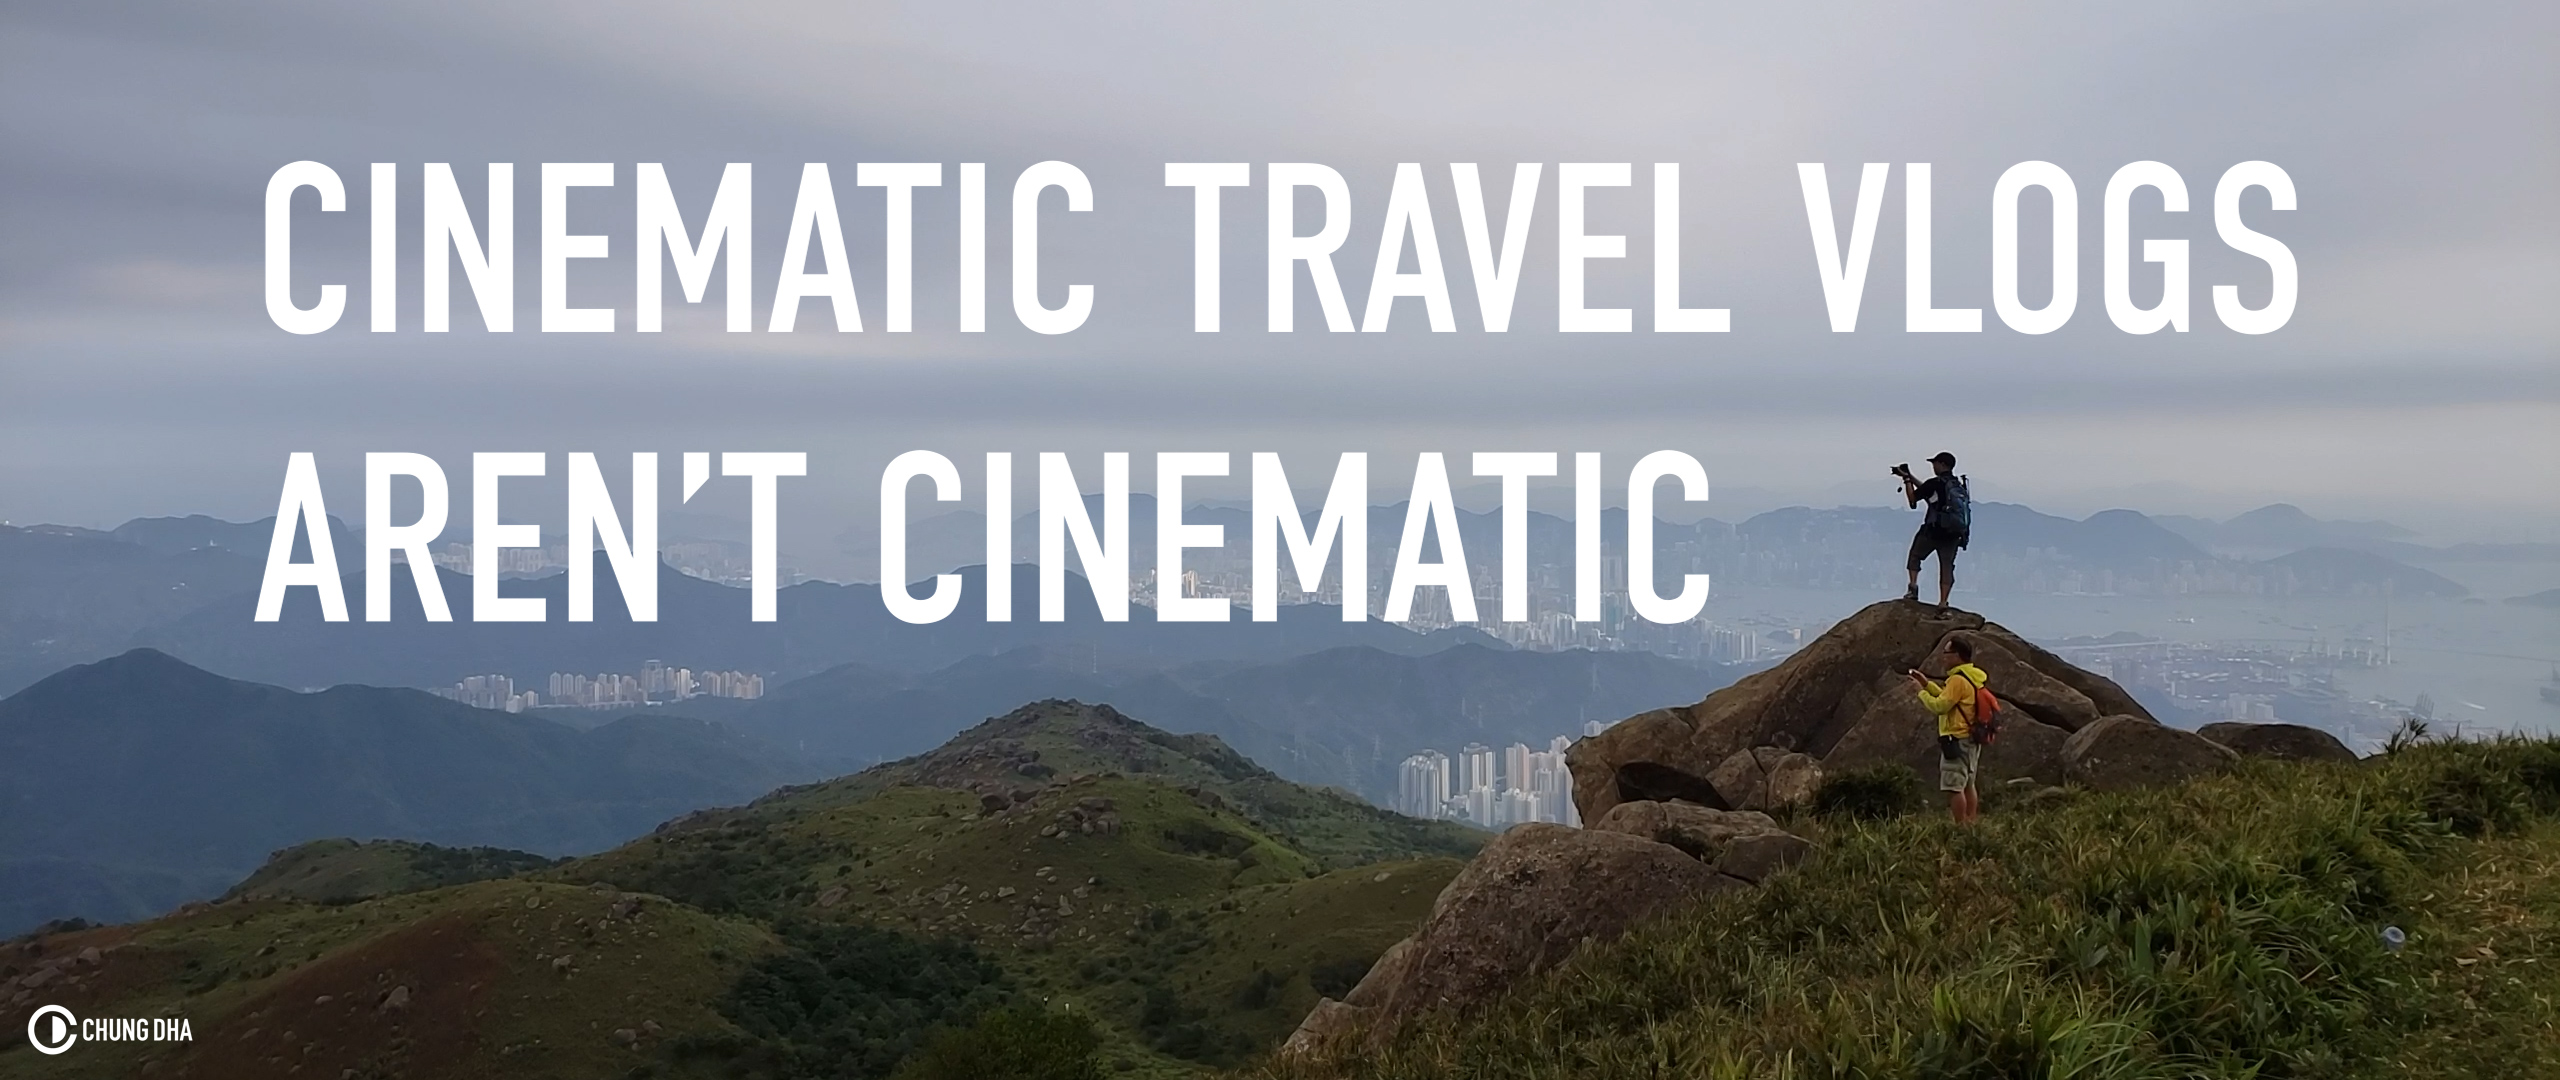 Cinematic Travel Vlogs aren't Cinematic